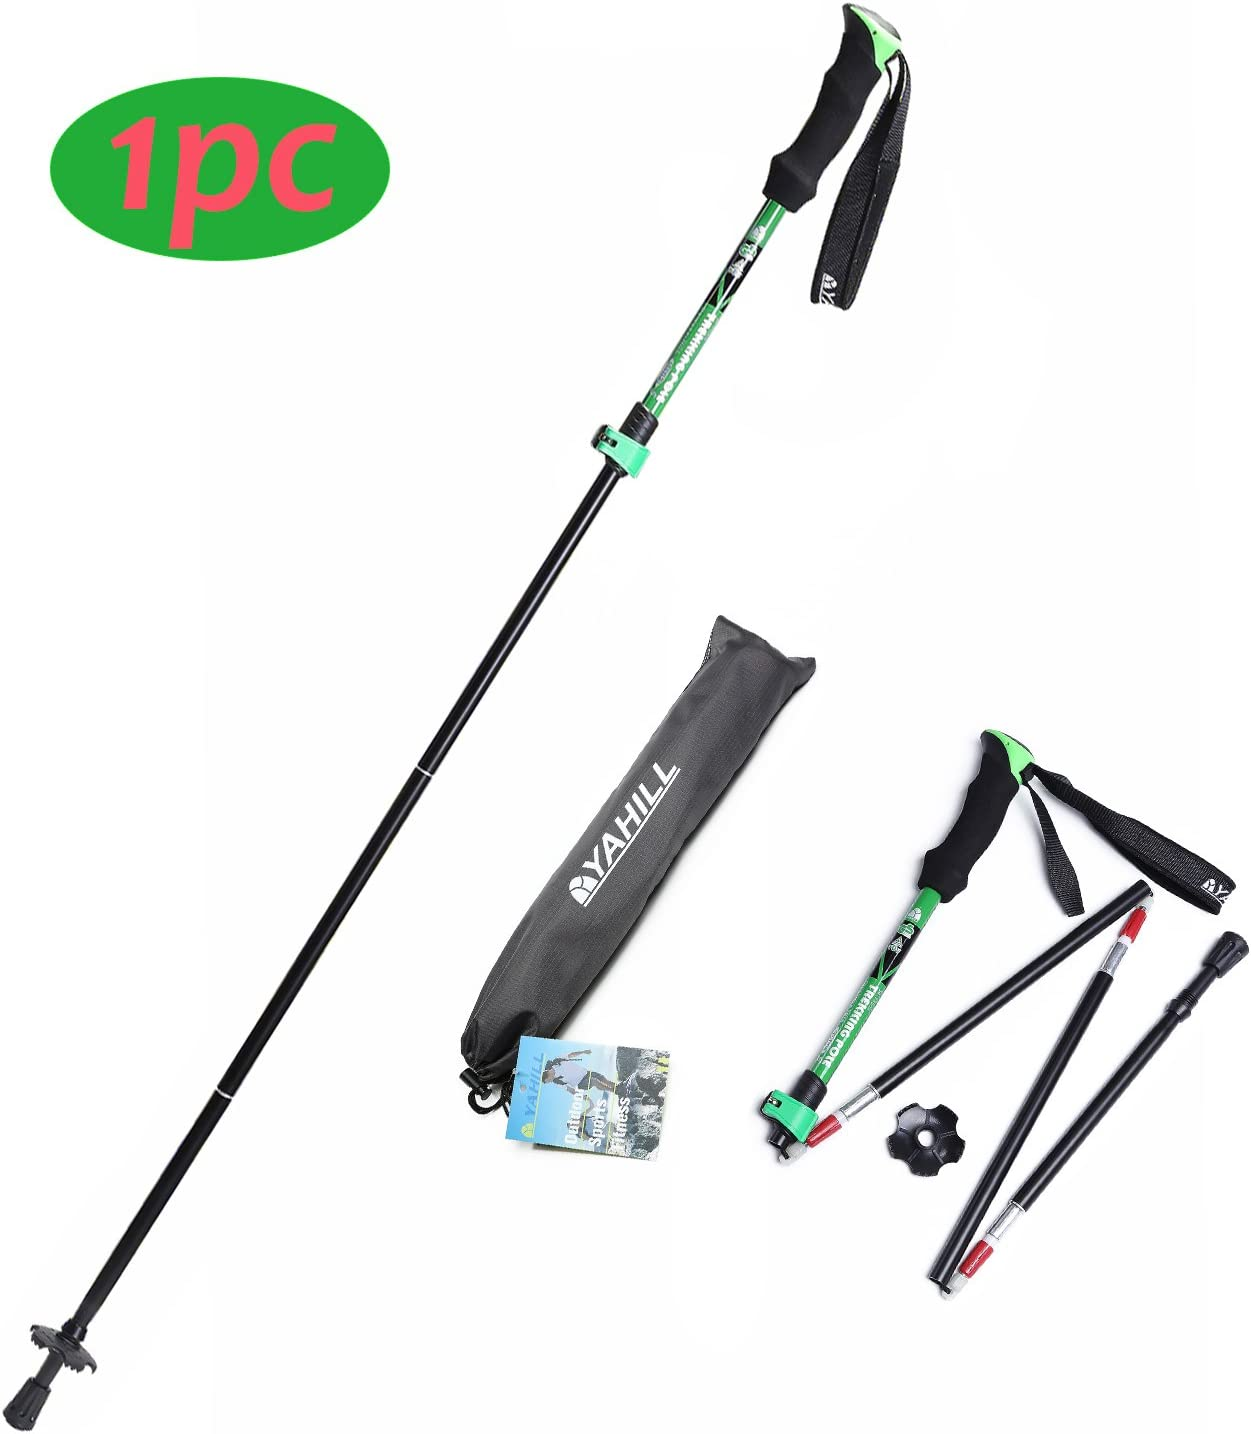 YAHILL Folding Trekking Pole Collapsible Stick Ultralight Adjustable, Alpenstocks with EVA Foam Handle, or Tips Protector Replacement Set for Travel Hiking Camping Climbing Backpacking Walking